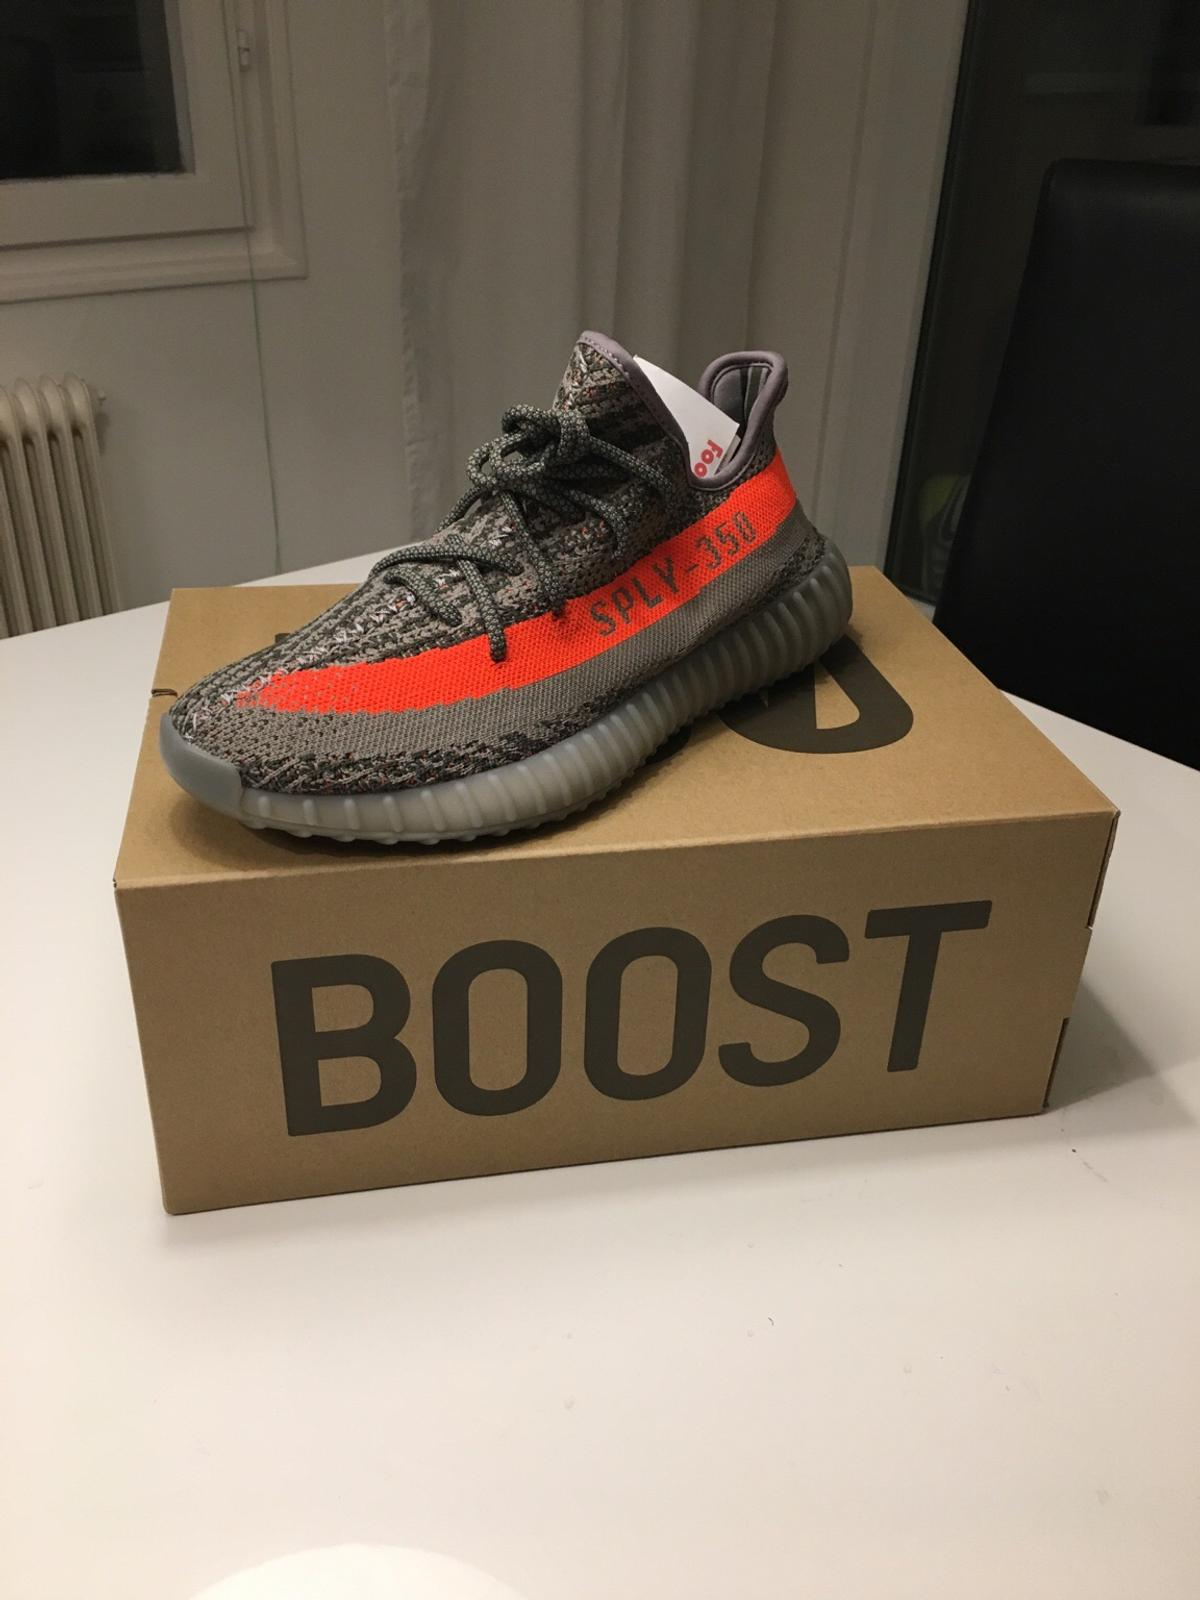 Details zu Adidas Yeezy Boost 350 V2 Static Grey Non Reflective UK 4 5 6 7 8 9 10 11 12 US